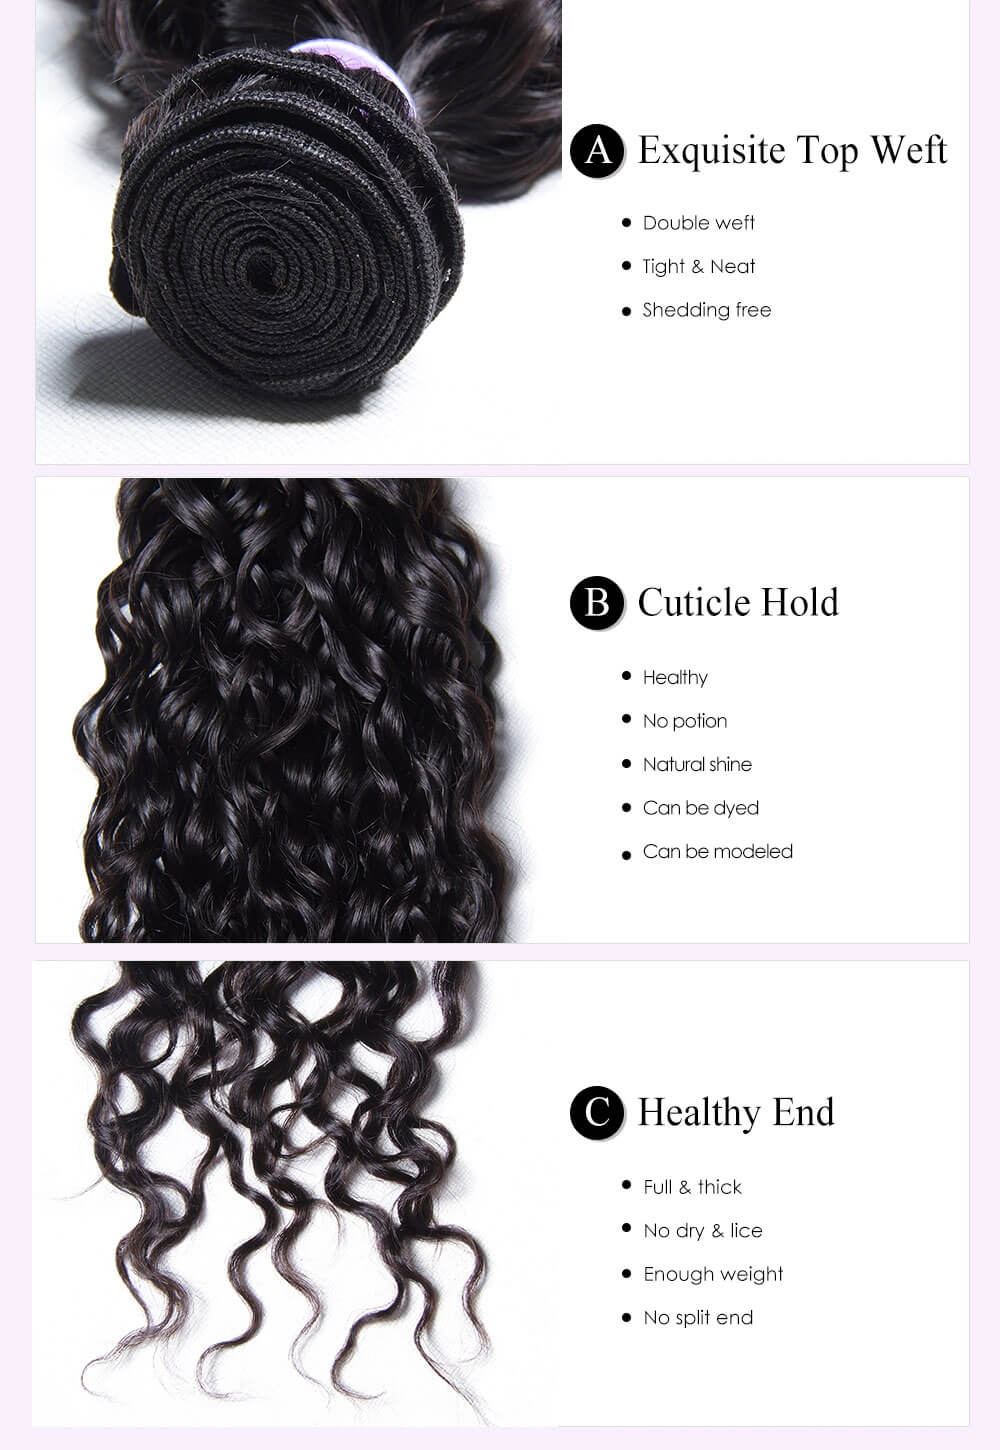 Unice kysiss Indian water wave 3 bundles hair